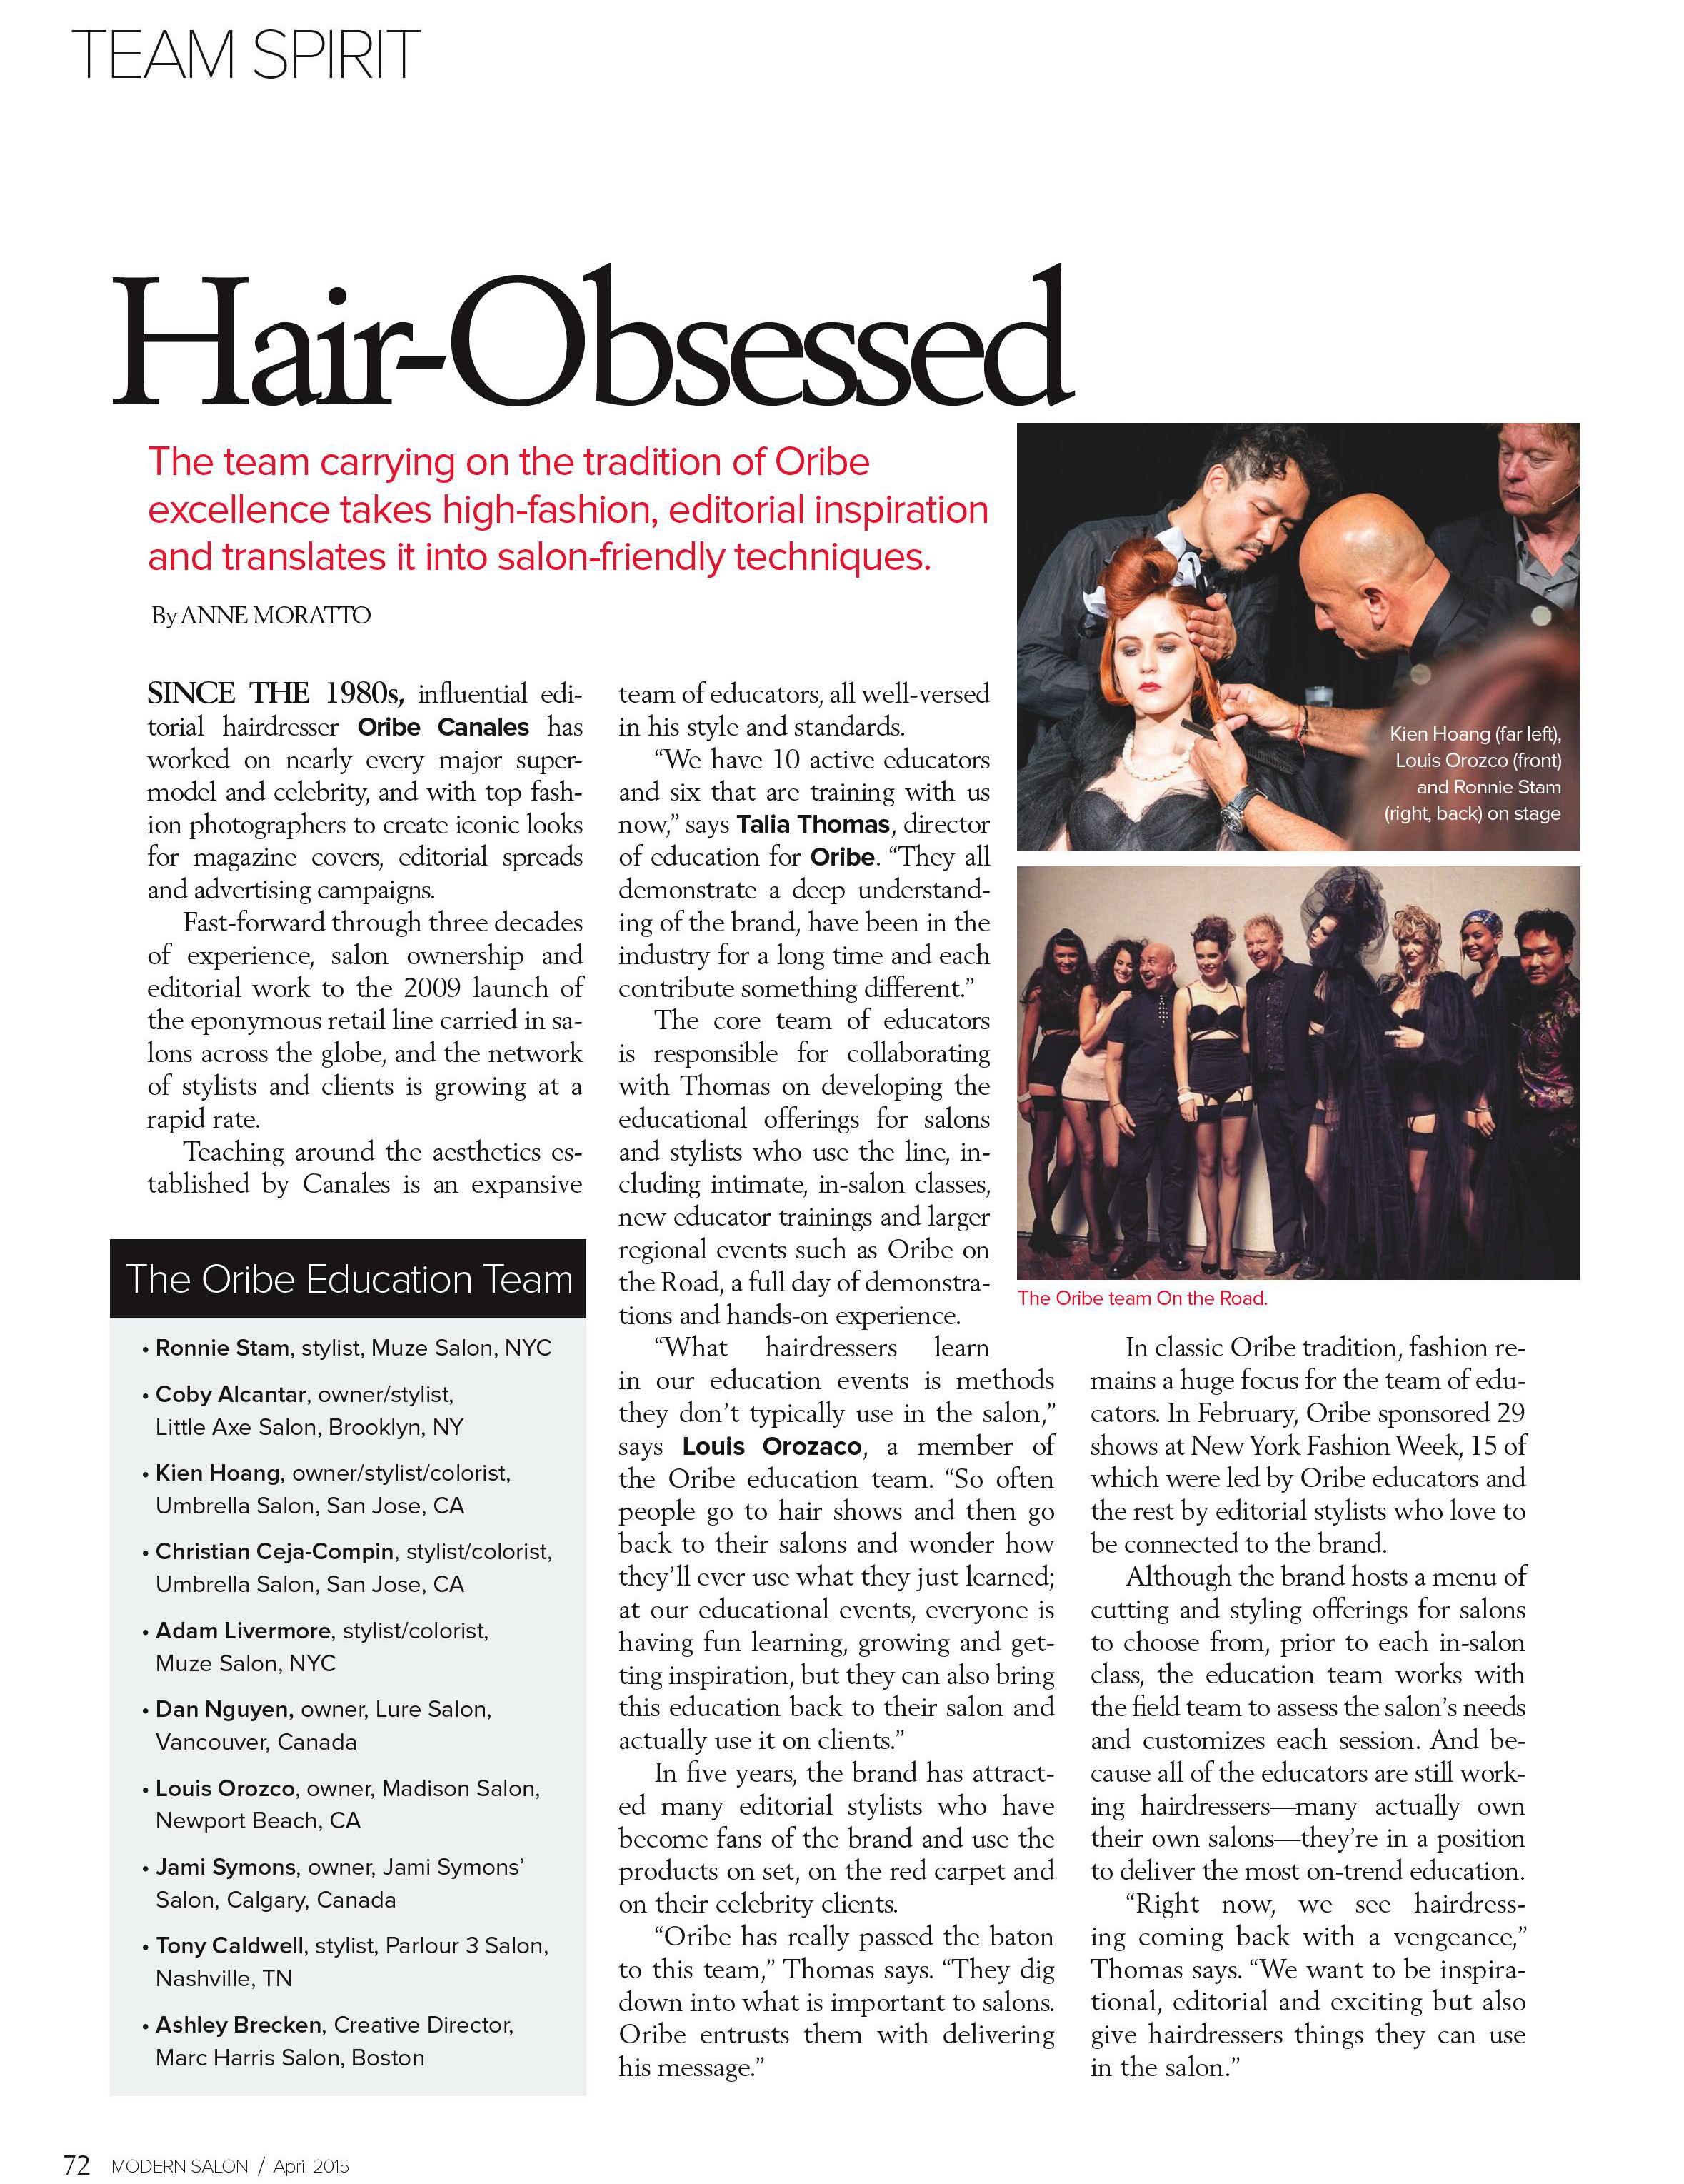 Modern Salon April 2015 (72-73).jpg